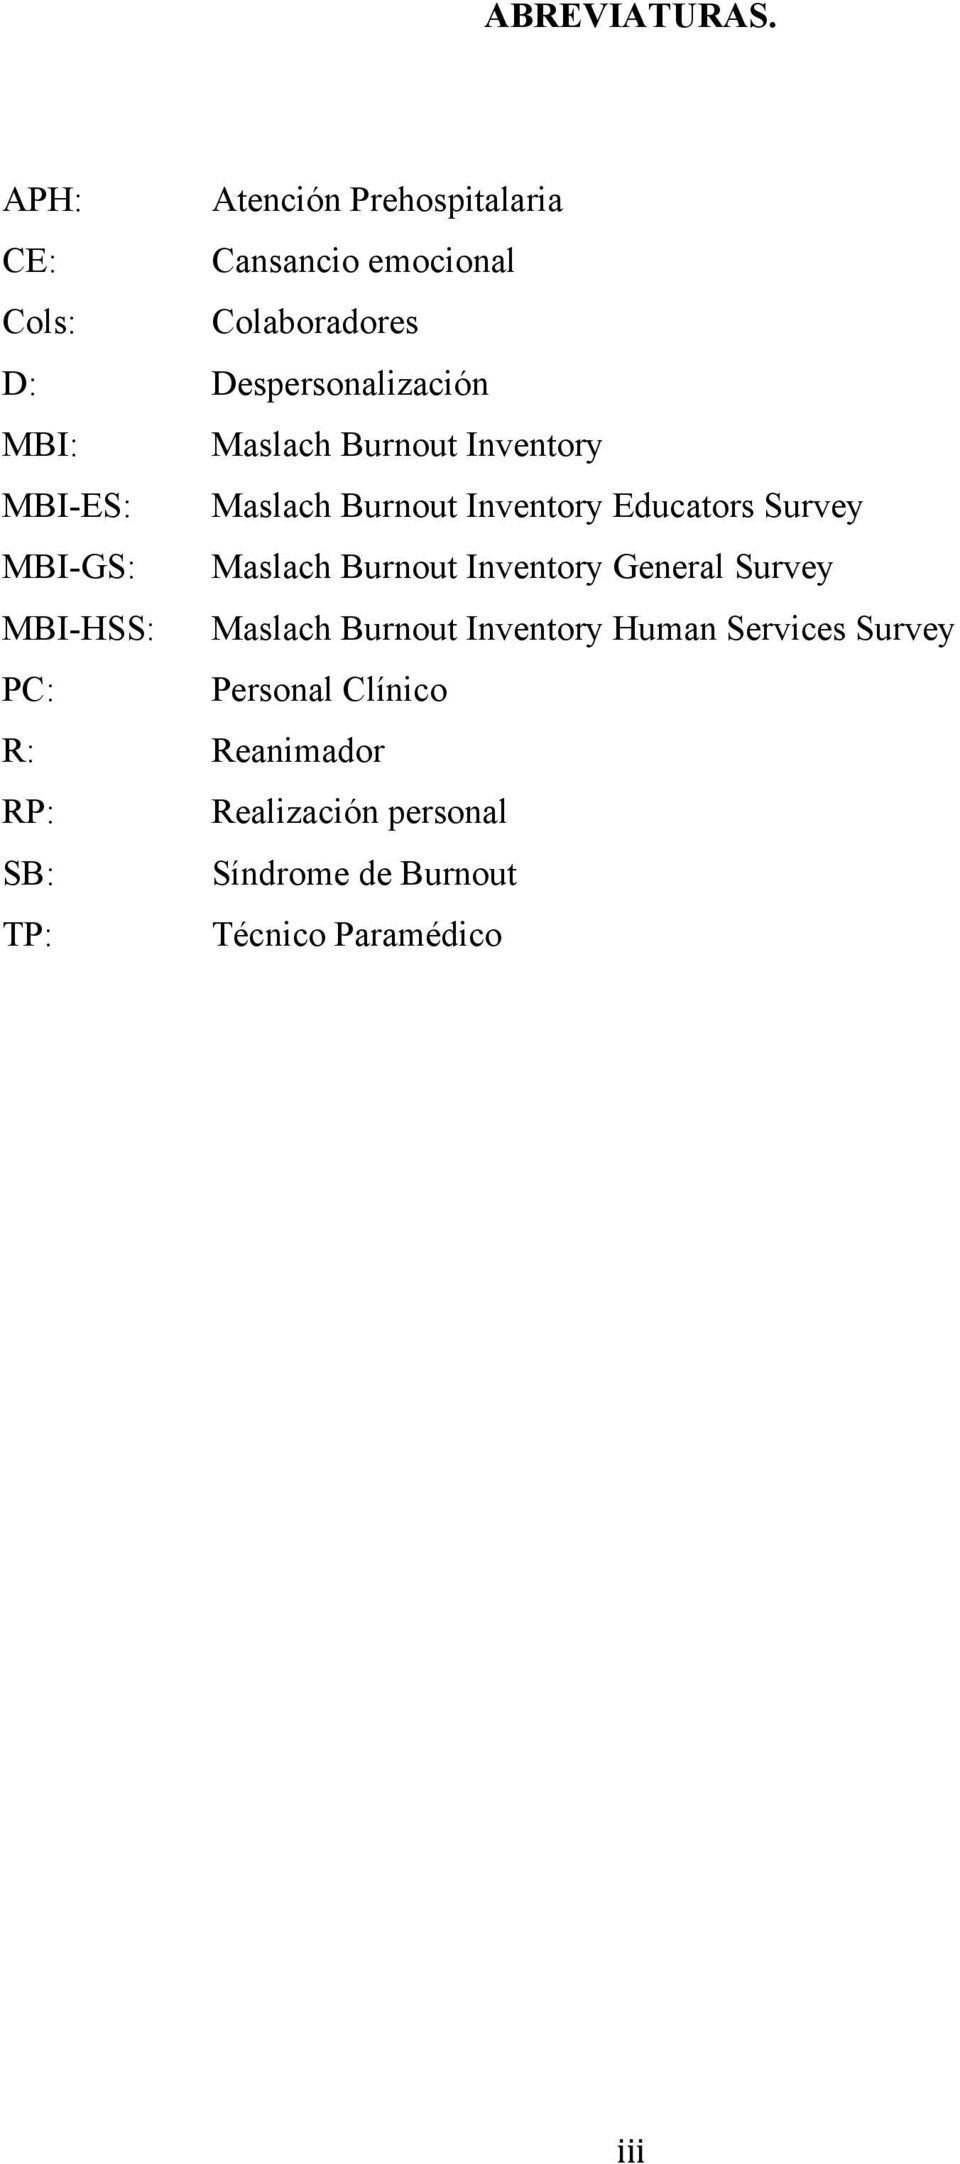 Maslach Burnout Inventory MBI-ES: Maslach Burnout Inventory Educators Survey MBI-GS: Maslach Burnout